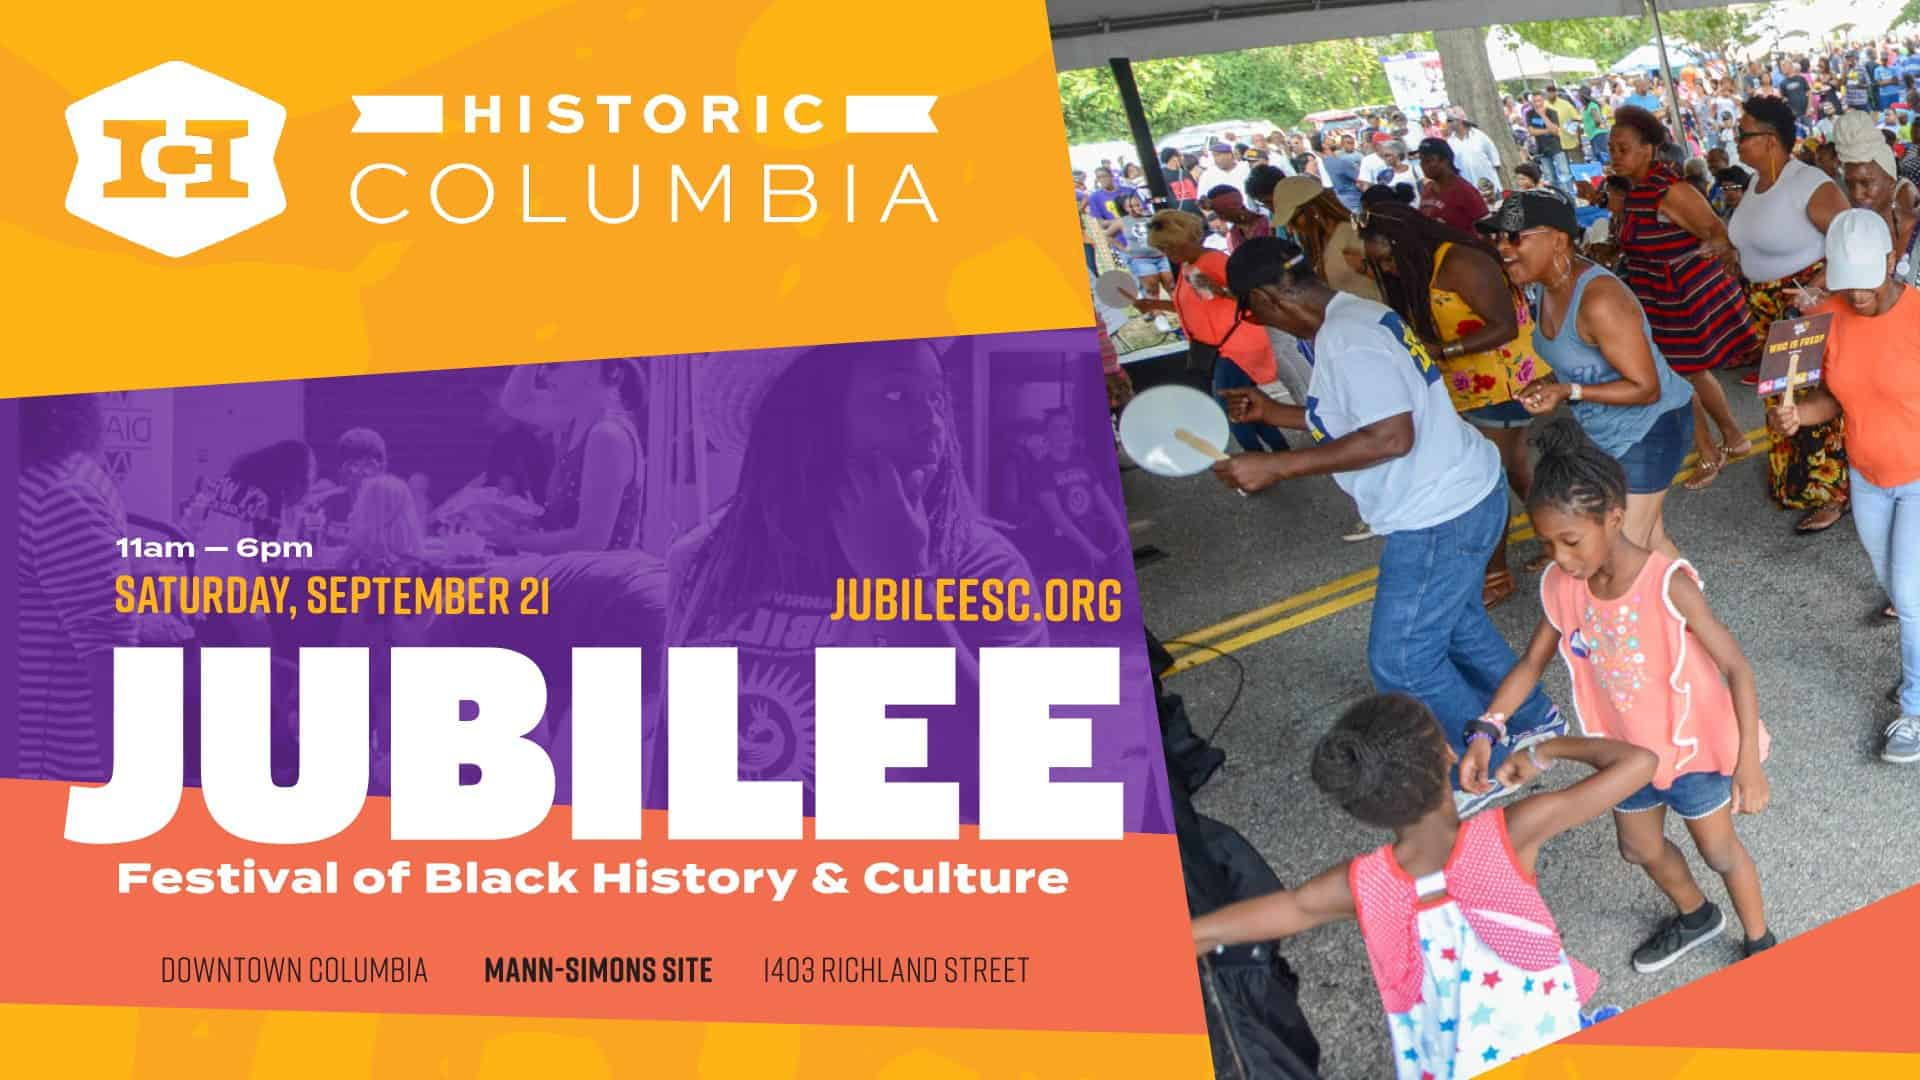 Jubilee: Festival of Black History & Culture